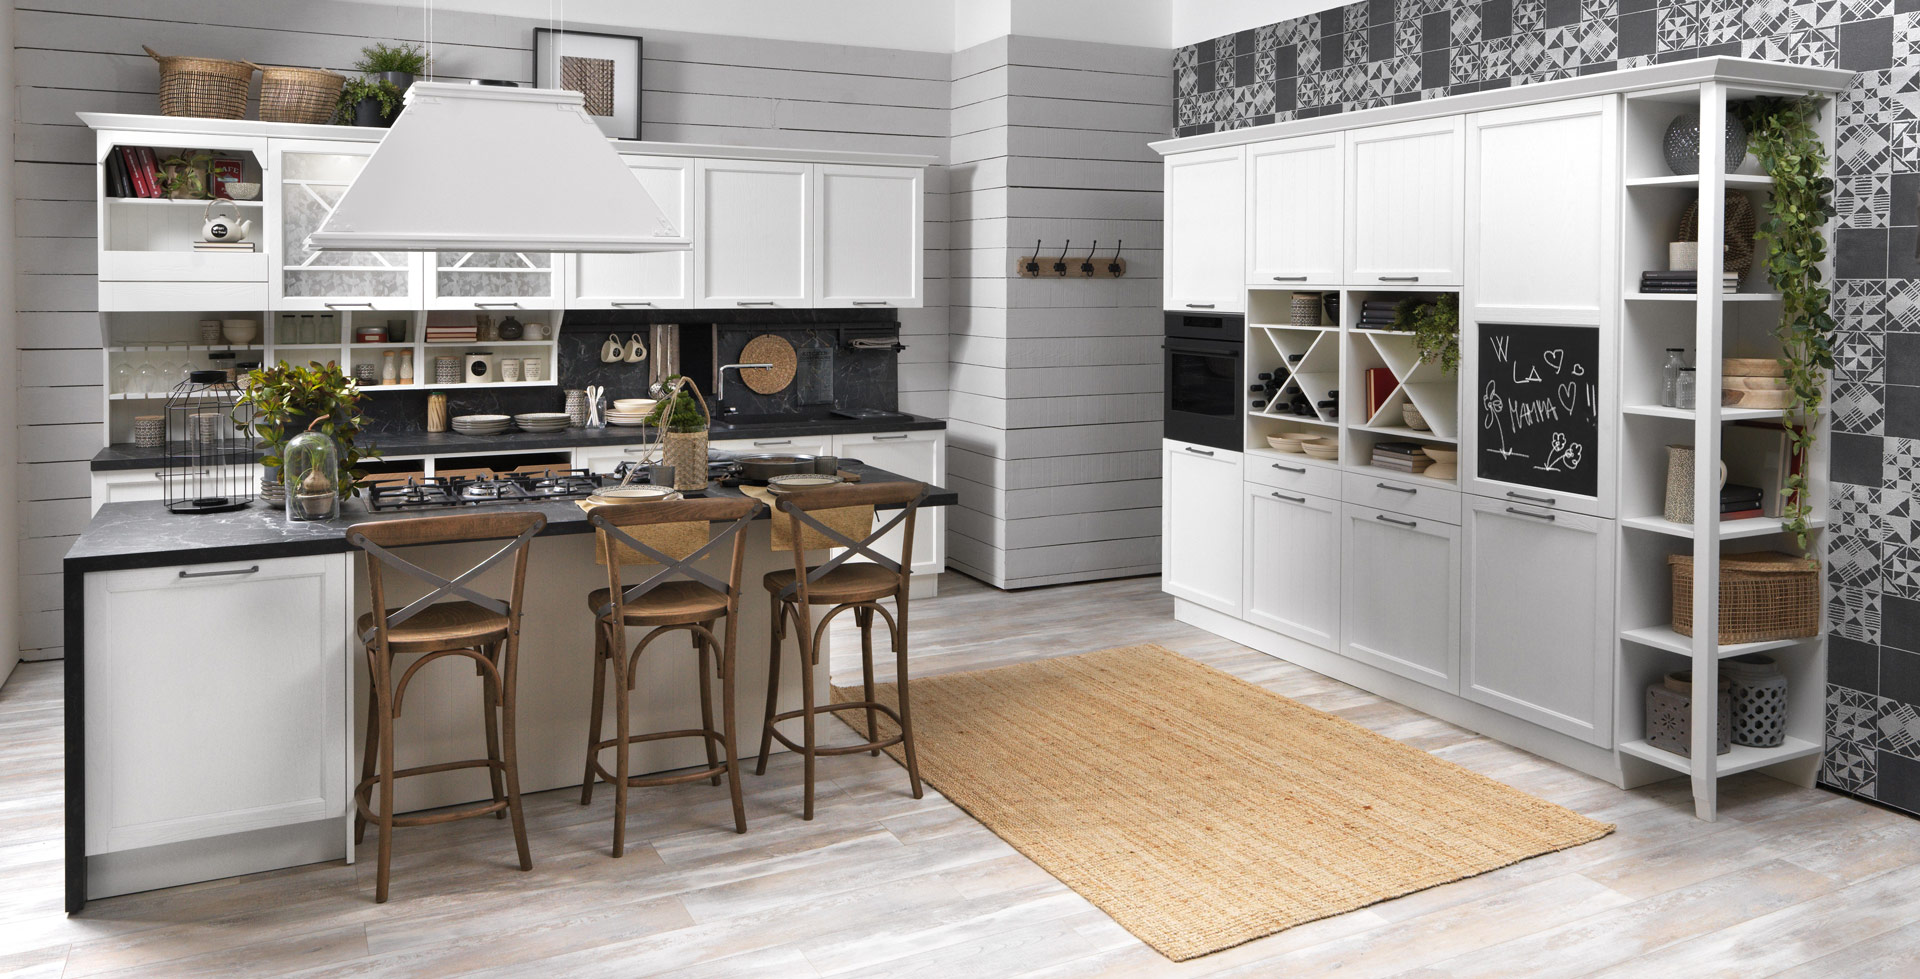 Ama Cucine Firenze contempo - creo kitchens